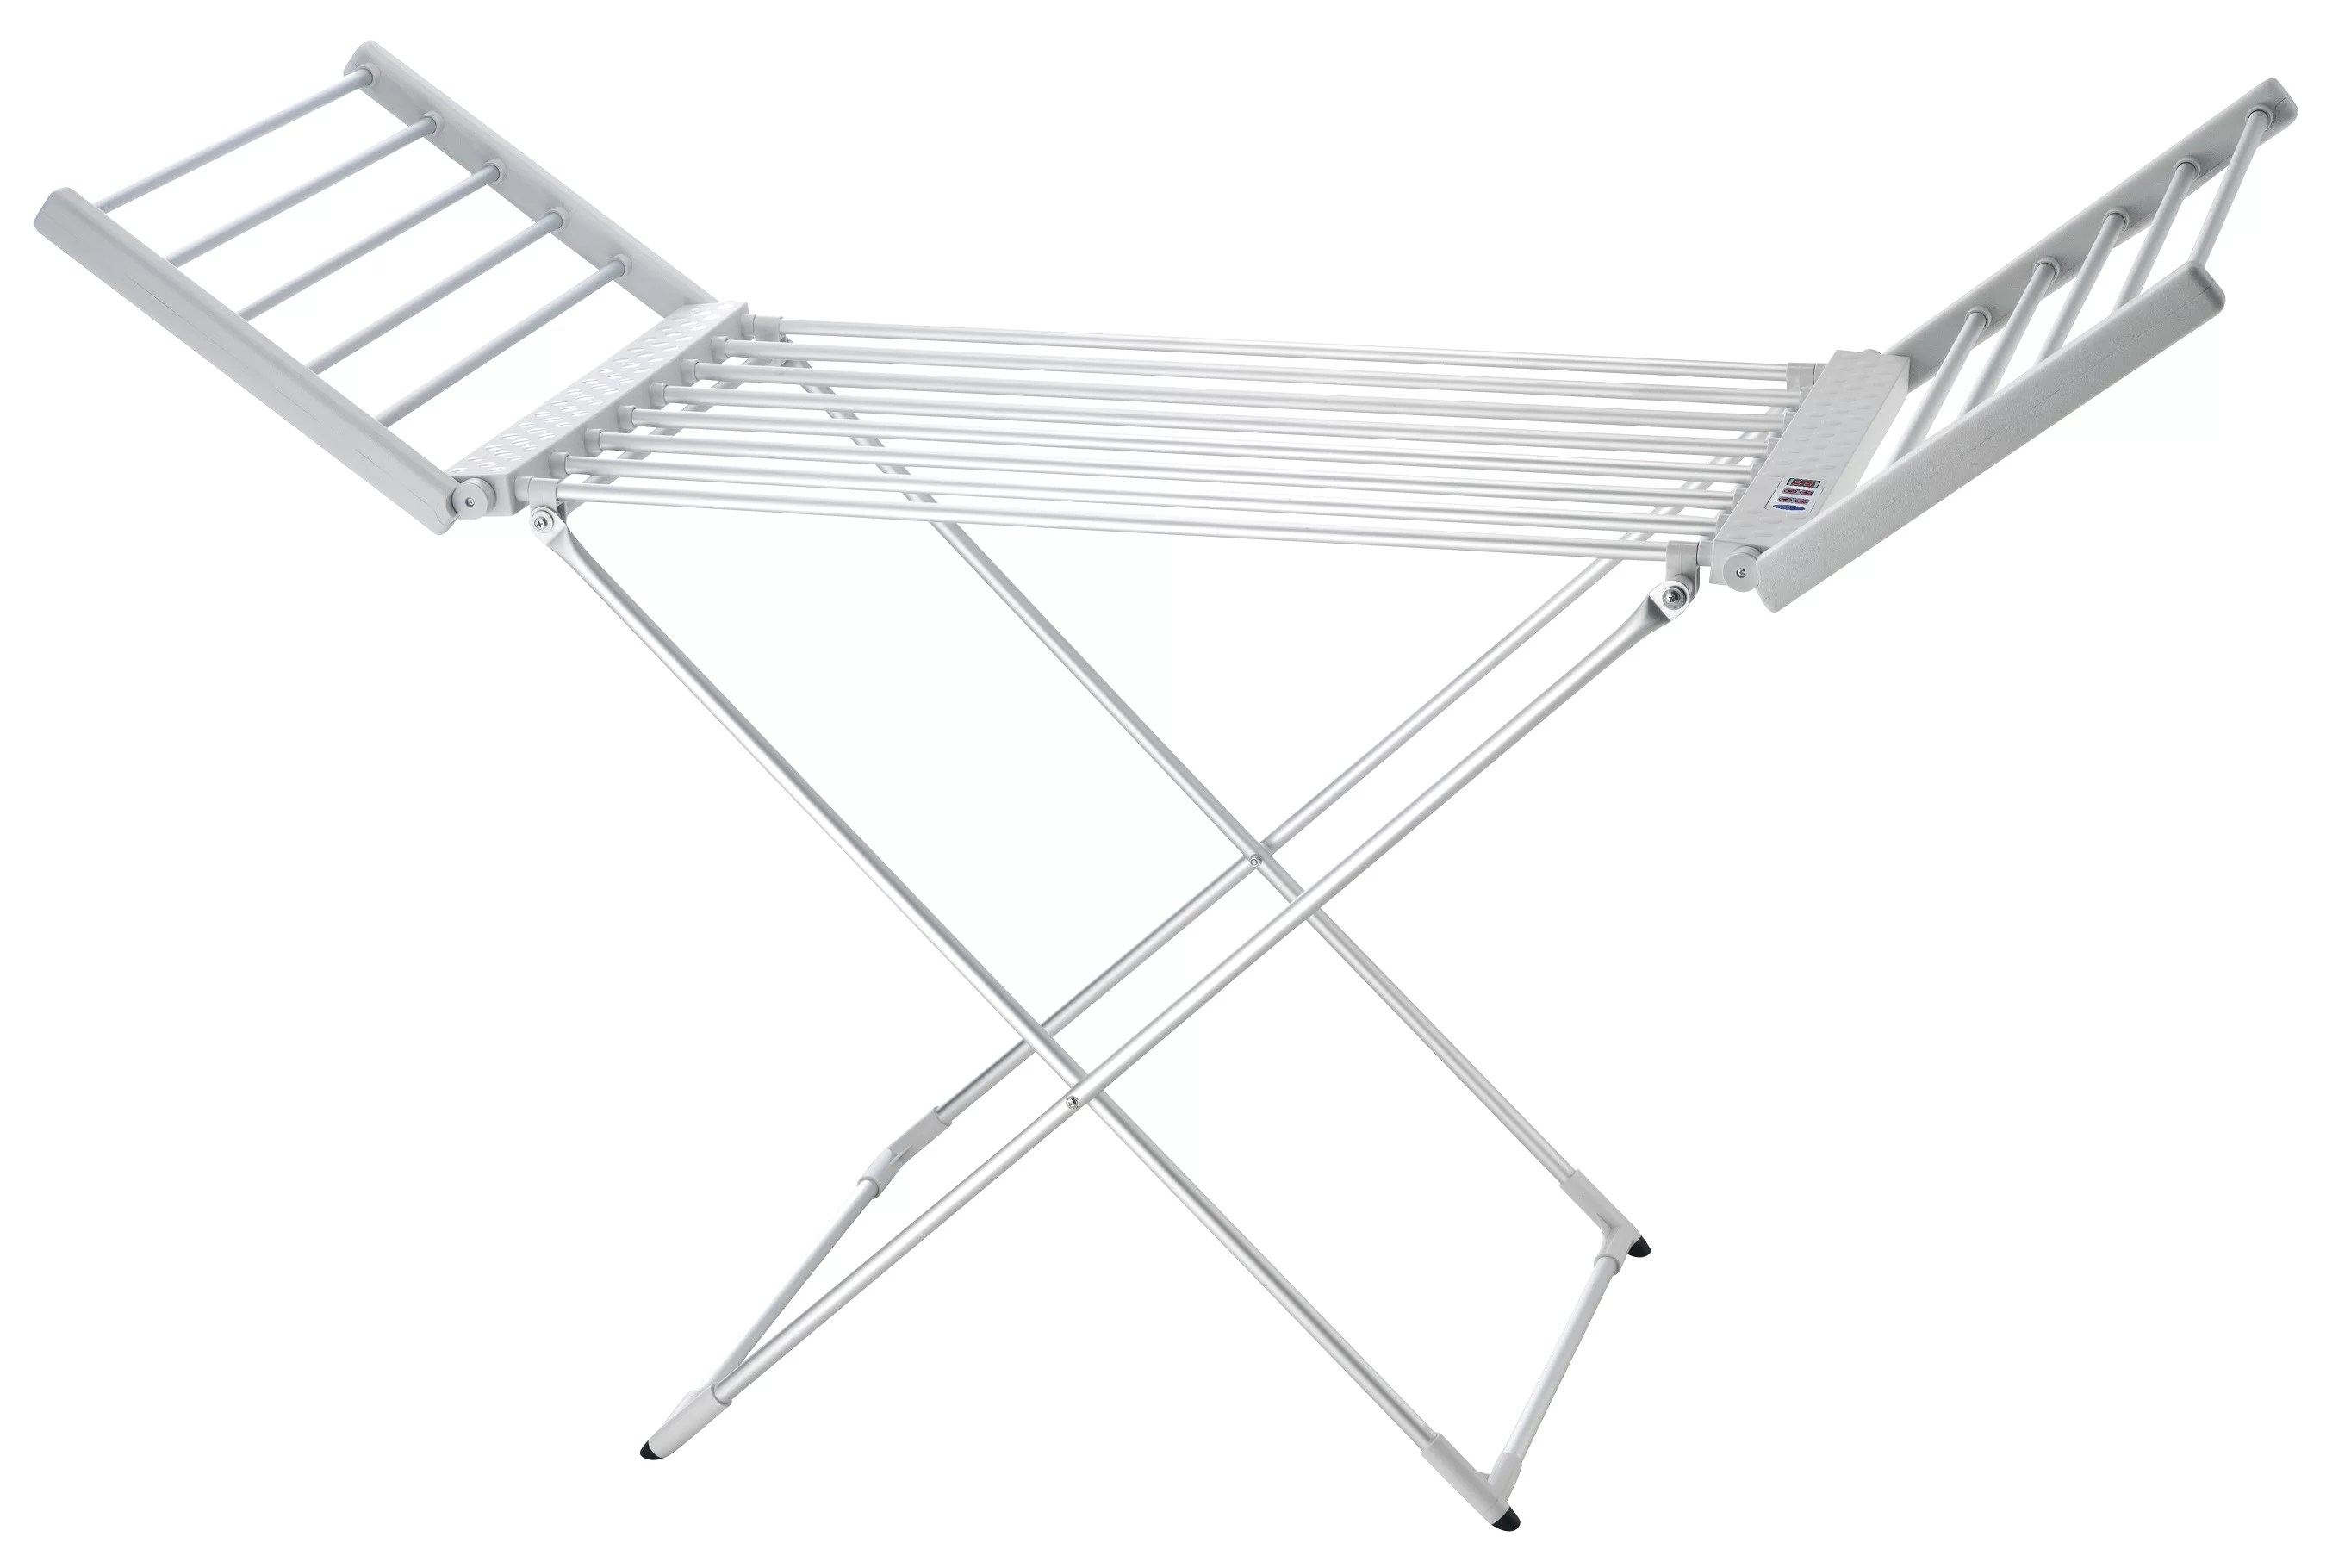 Lcm Home Fashions Inc Clothes Drying Rack Free Standing Electric Towel Warmer Wayfair